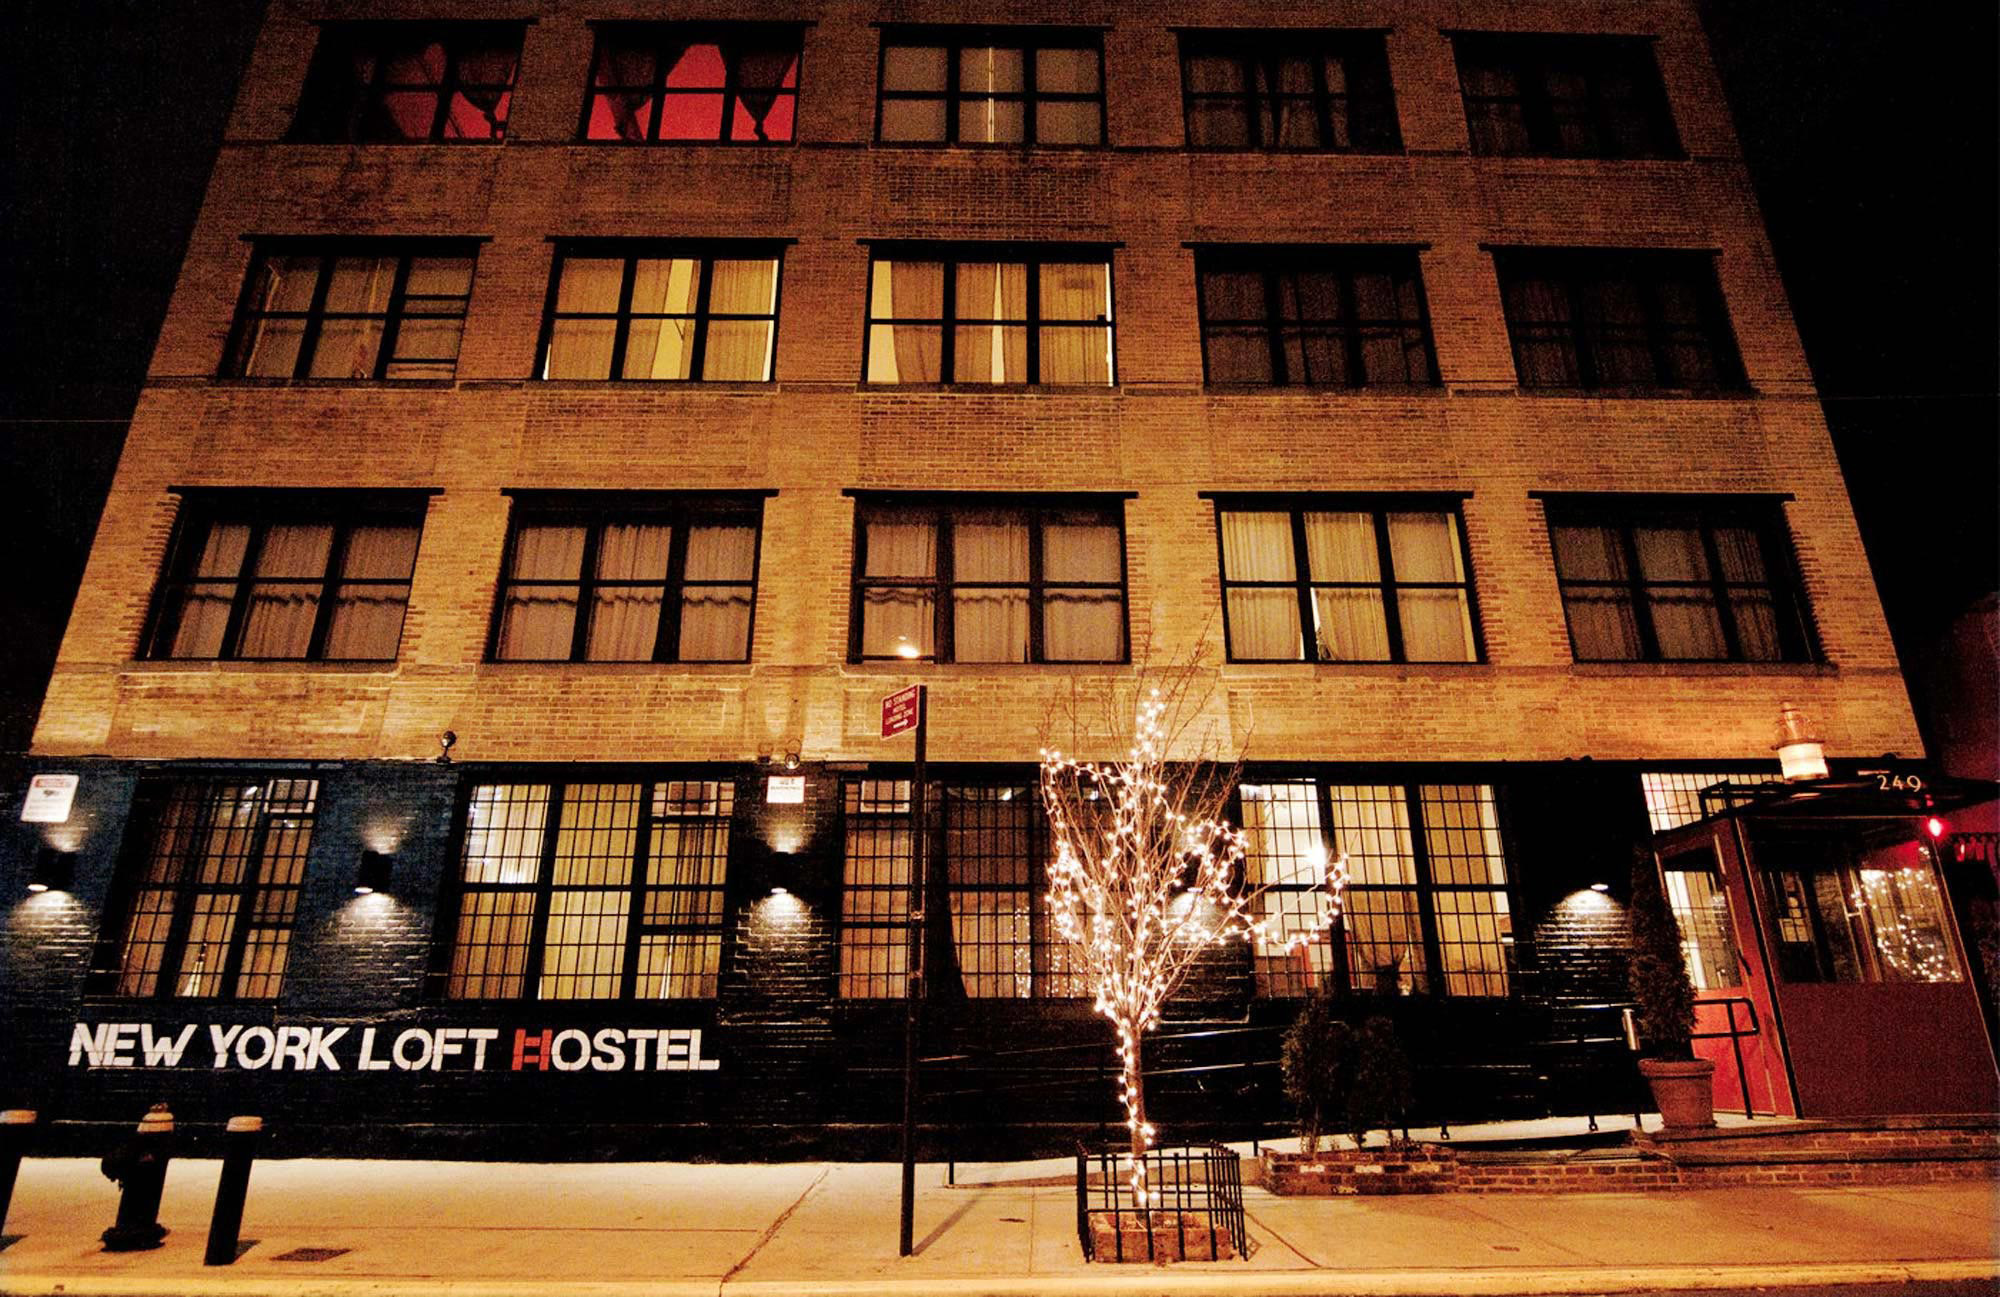 Federico rozo new york loft hostel for Loft new york affitto